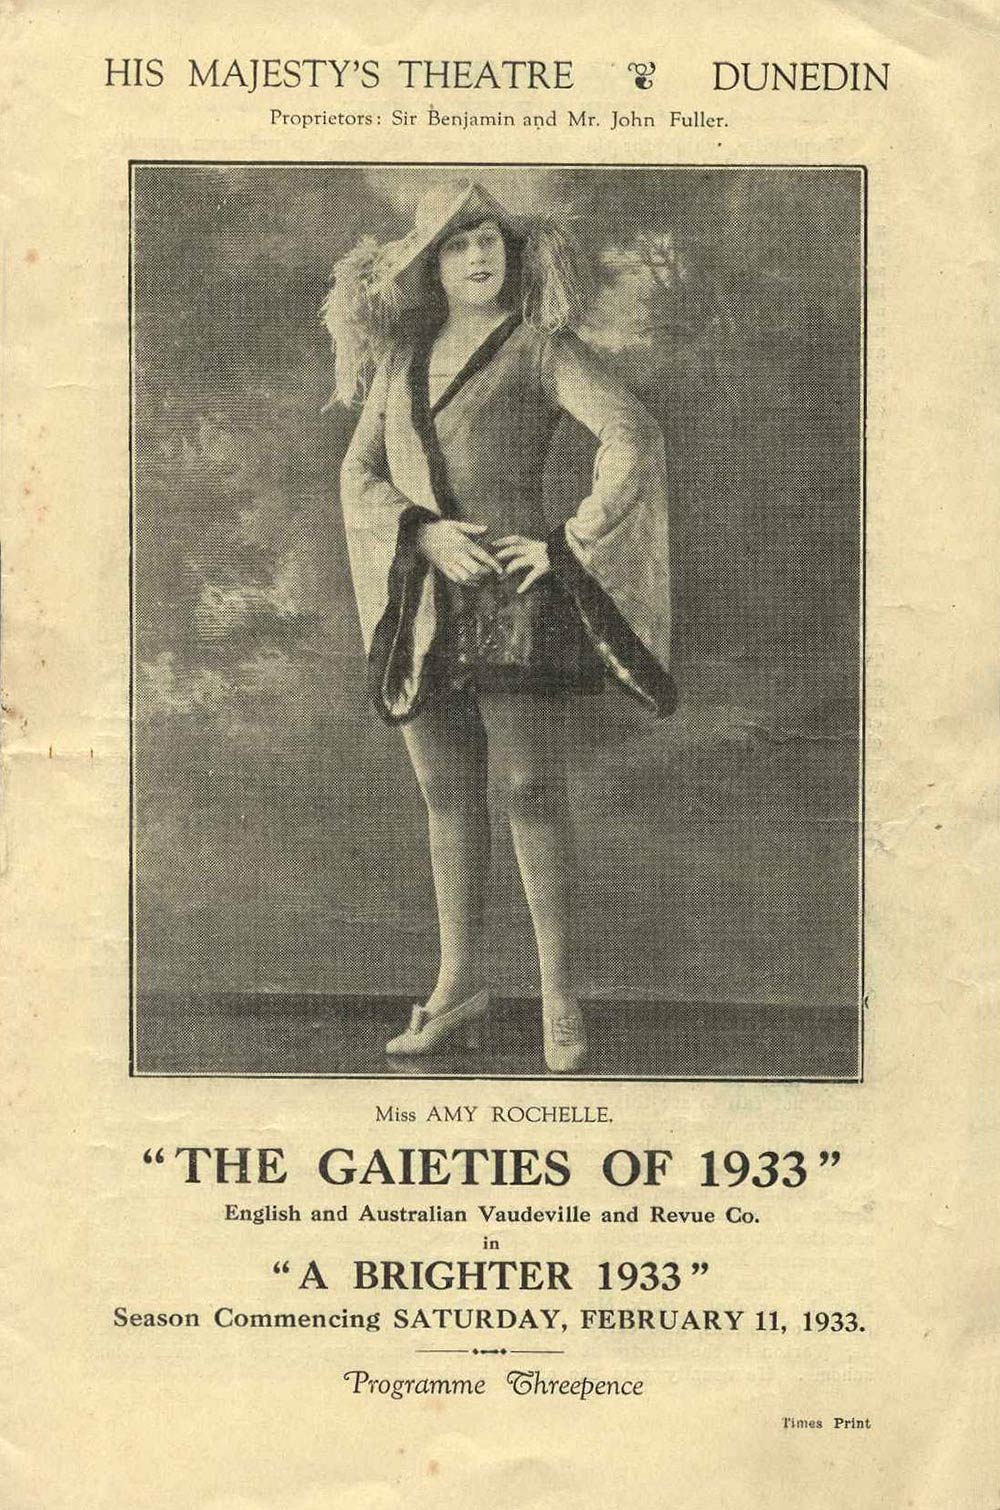 <em>A brighter 1933: The Gaieties of 1933: English and Australian Vaudeville and Revue Co</em>. His Majesty's Theatre, Dunedin, Feb. 11, 1933.